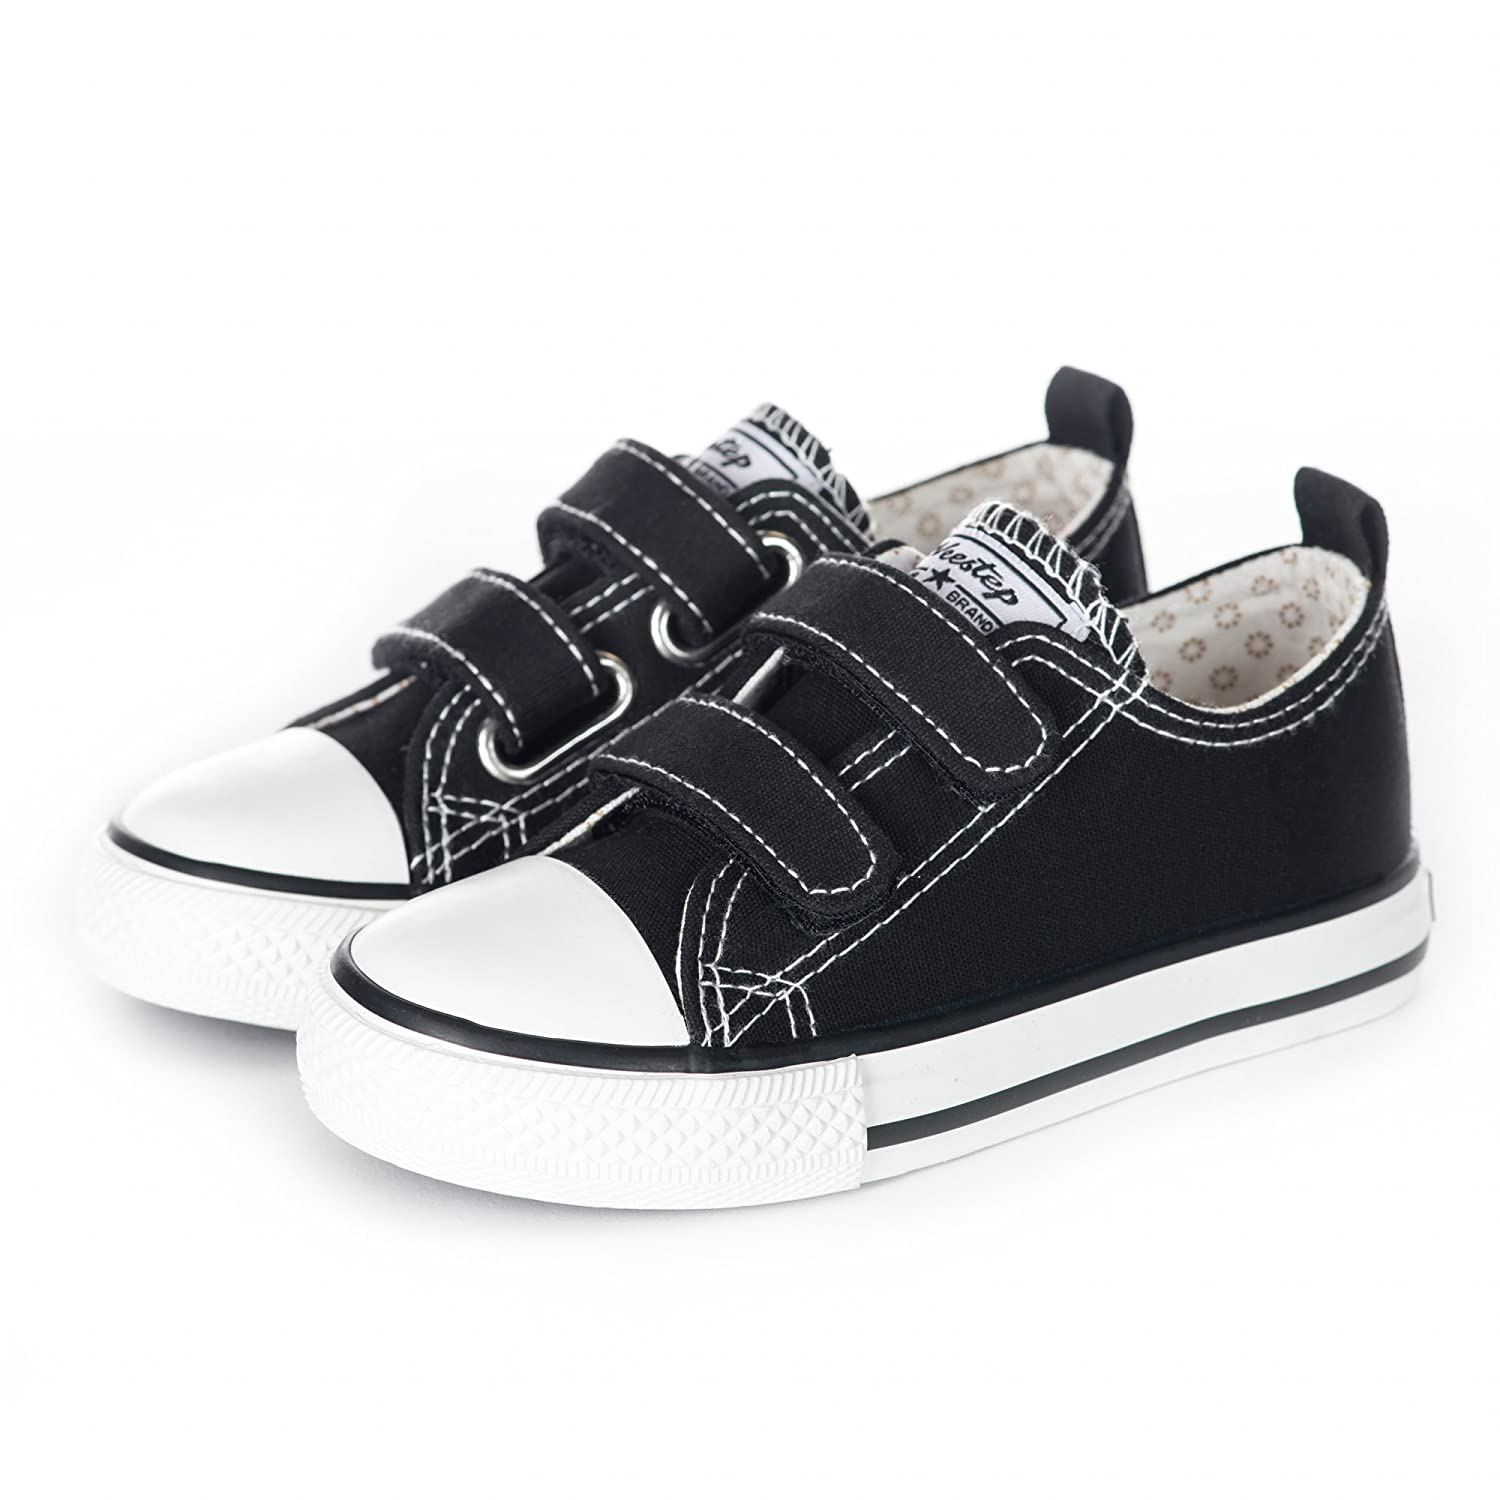 Weestep Toddler//Little Kid Boy and Girl Classic Adjustable Strap Sneaker